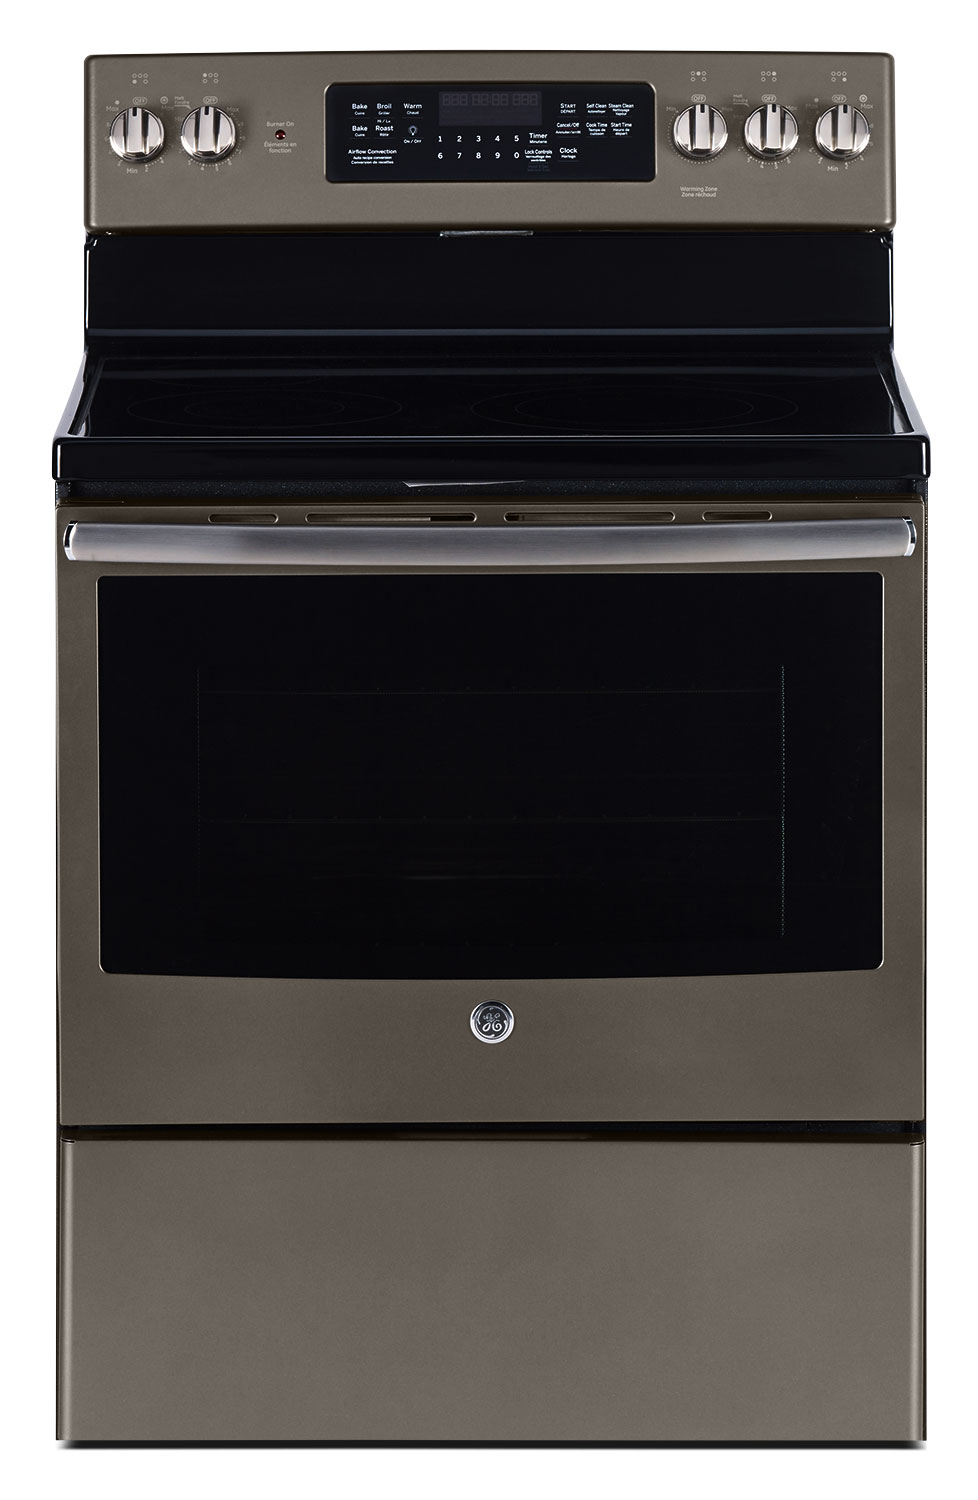 Cooking Products - GE 5.0 Cu. Ft. Freestanding Electric Range – JCB840EKES